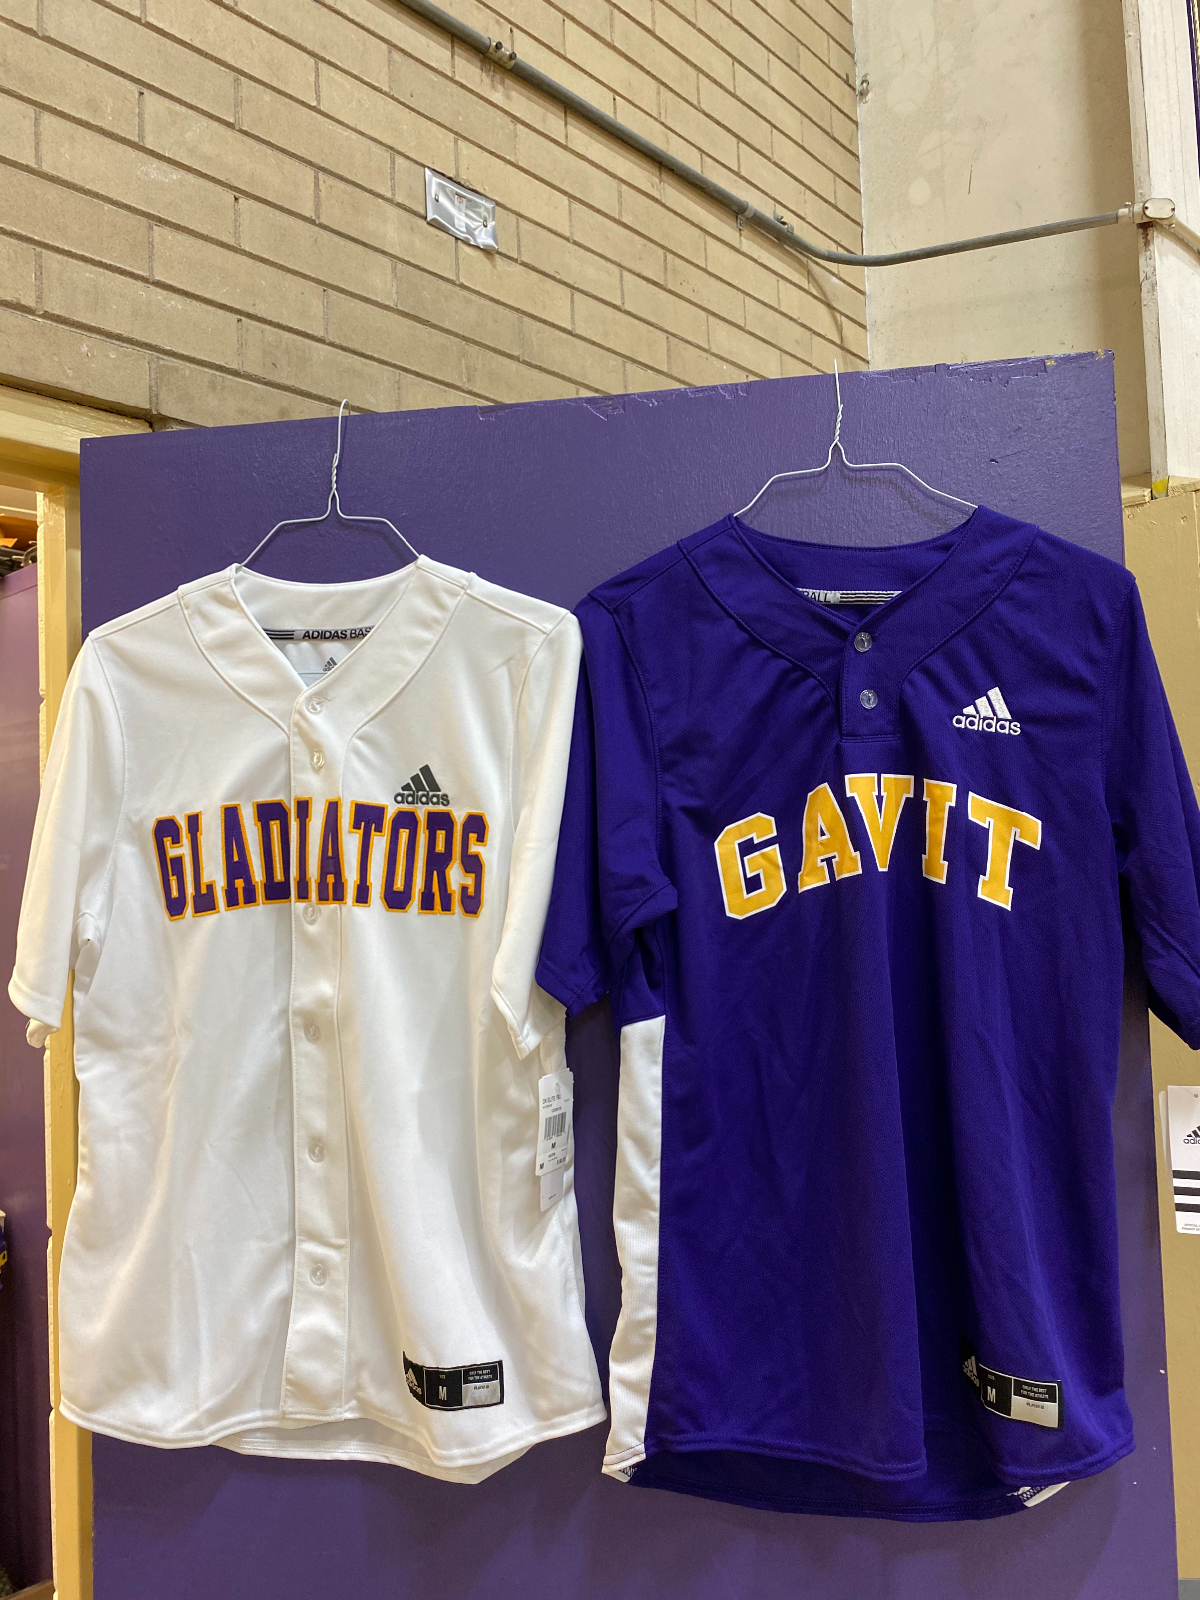 The Gladiator Baseball team is ready to open the season this weekend!!!